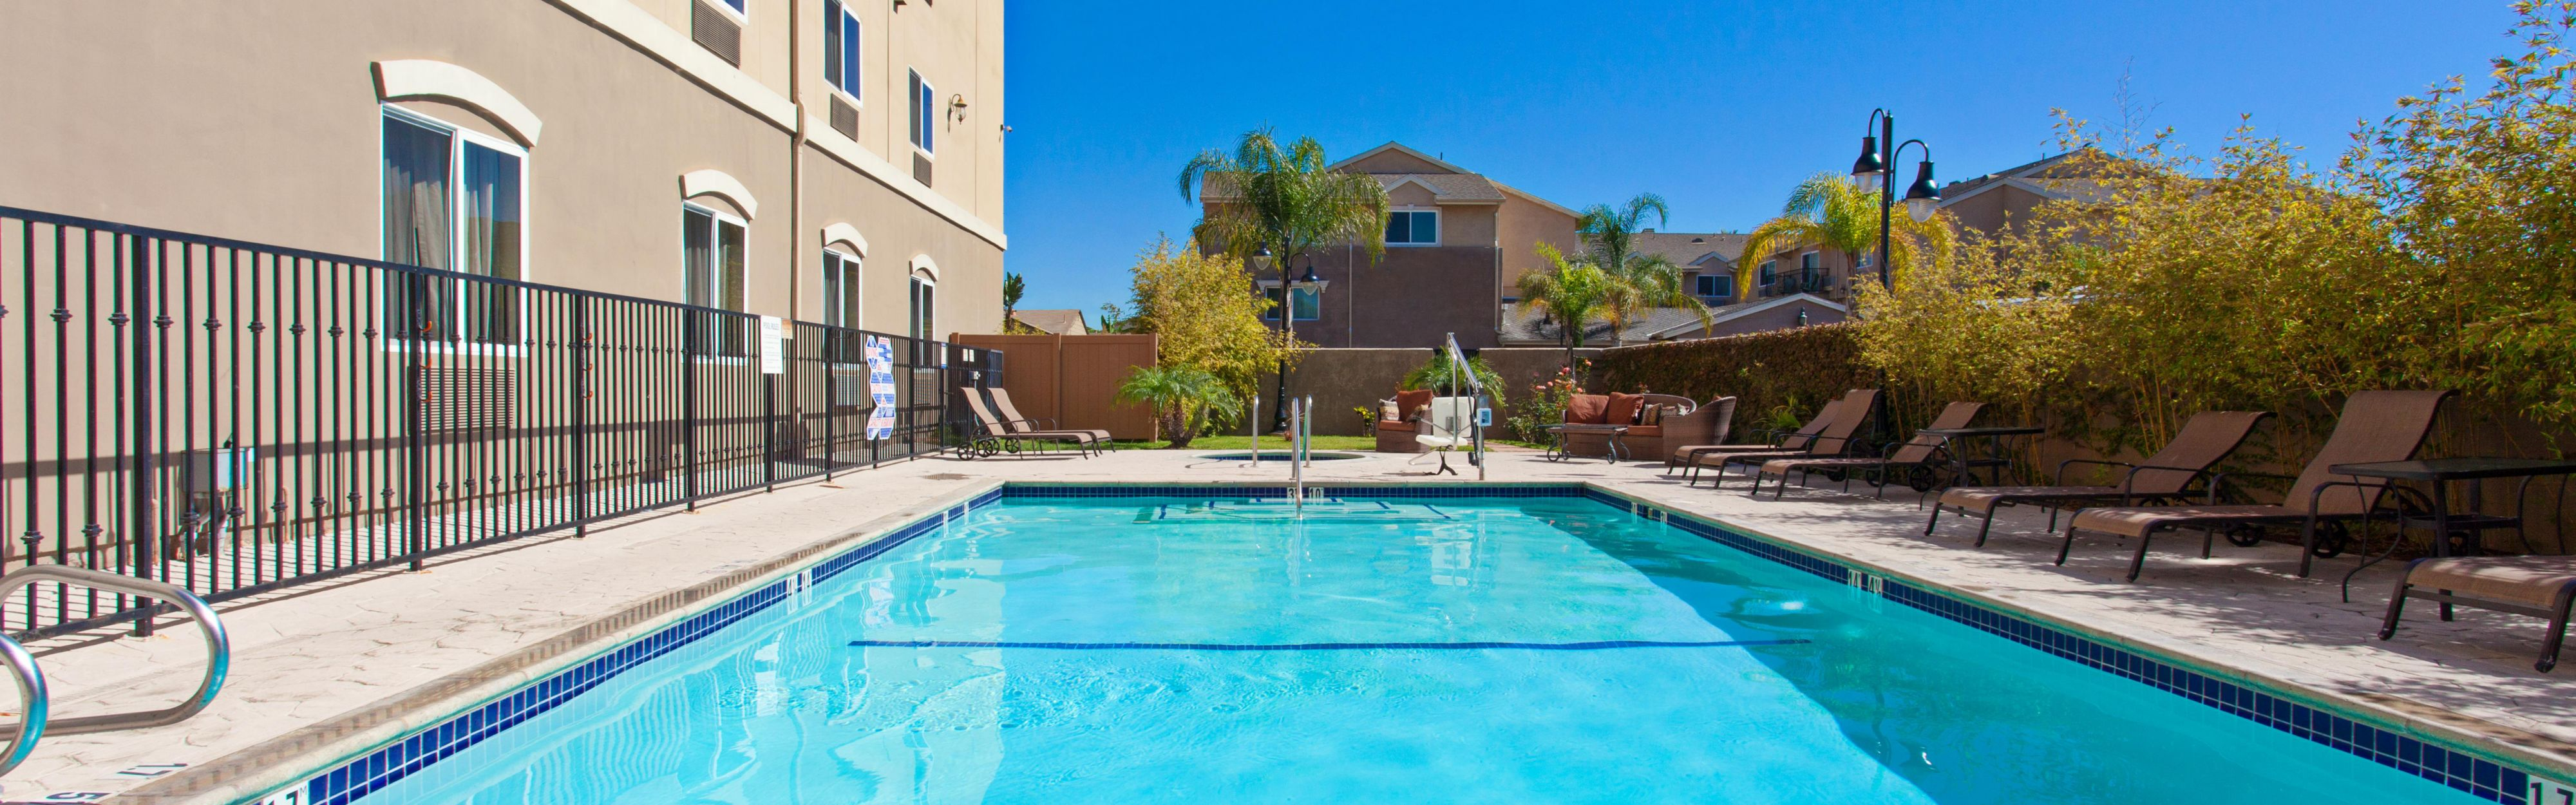 Motels In Los Angeles Near Airport